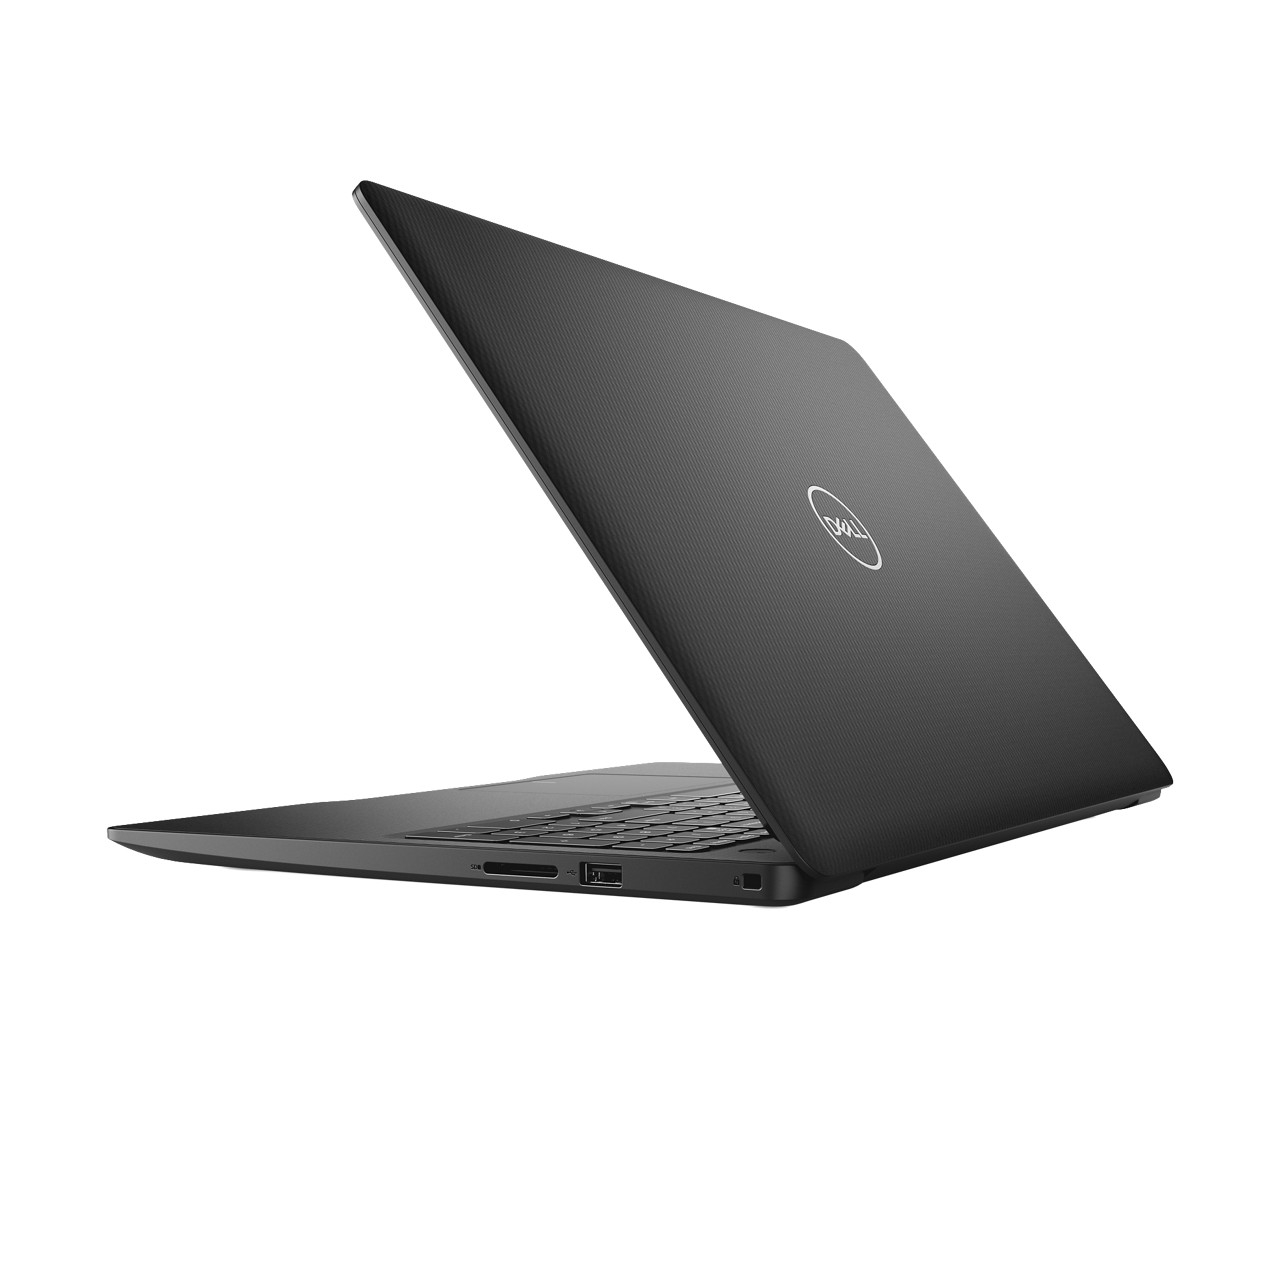 Notebook Dell Inspiron 3584 Core I3 7020u Memoria 4gb Ssd 256gb Tela 15.6' Led Hd Sistema Linux